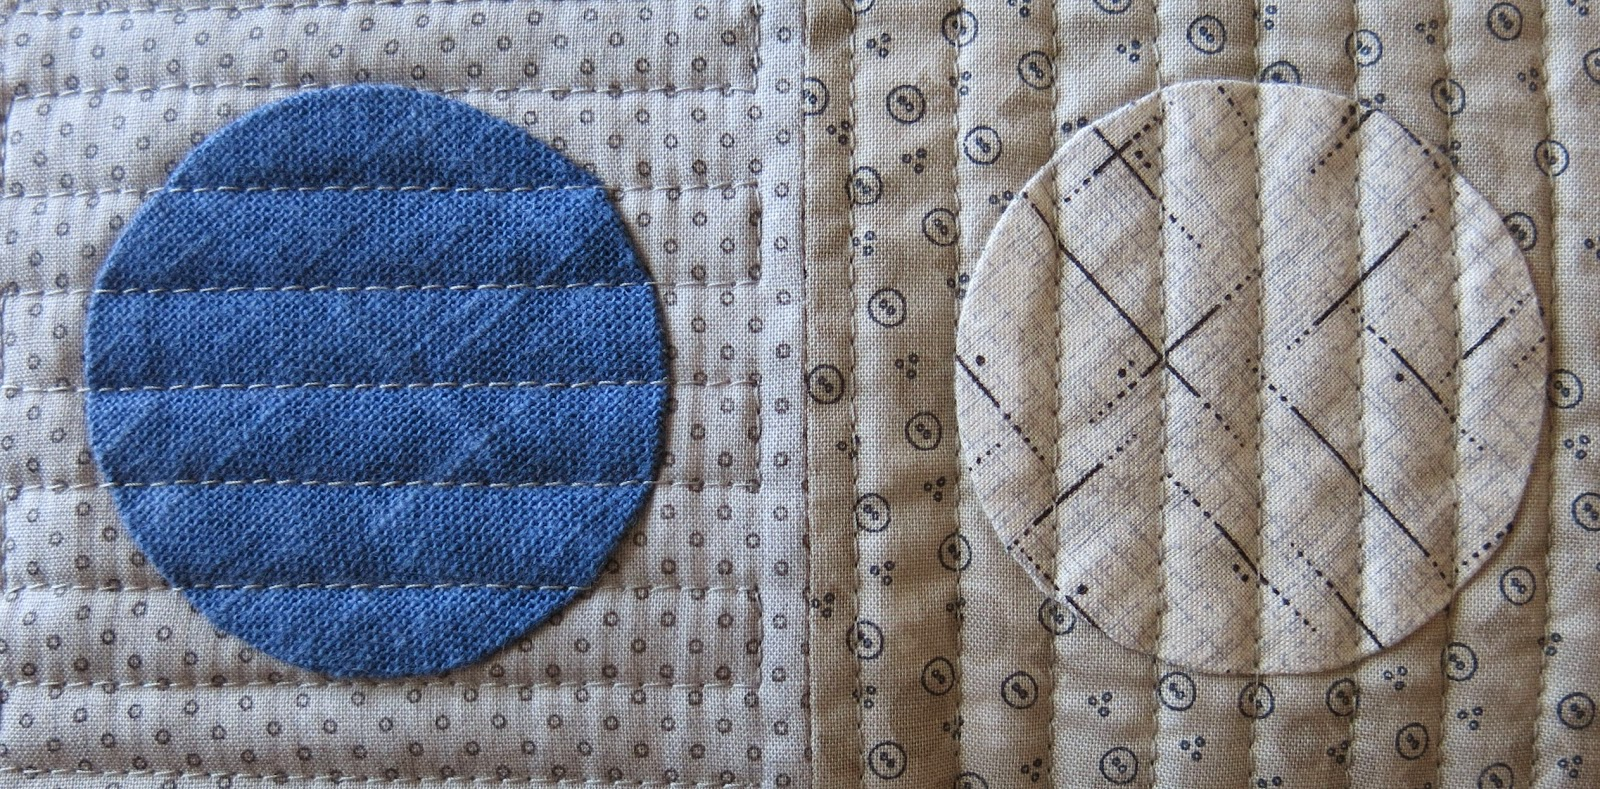 Applique circles - Cushion - Machine quilting